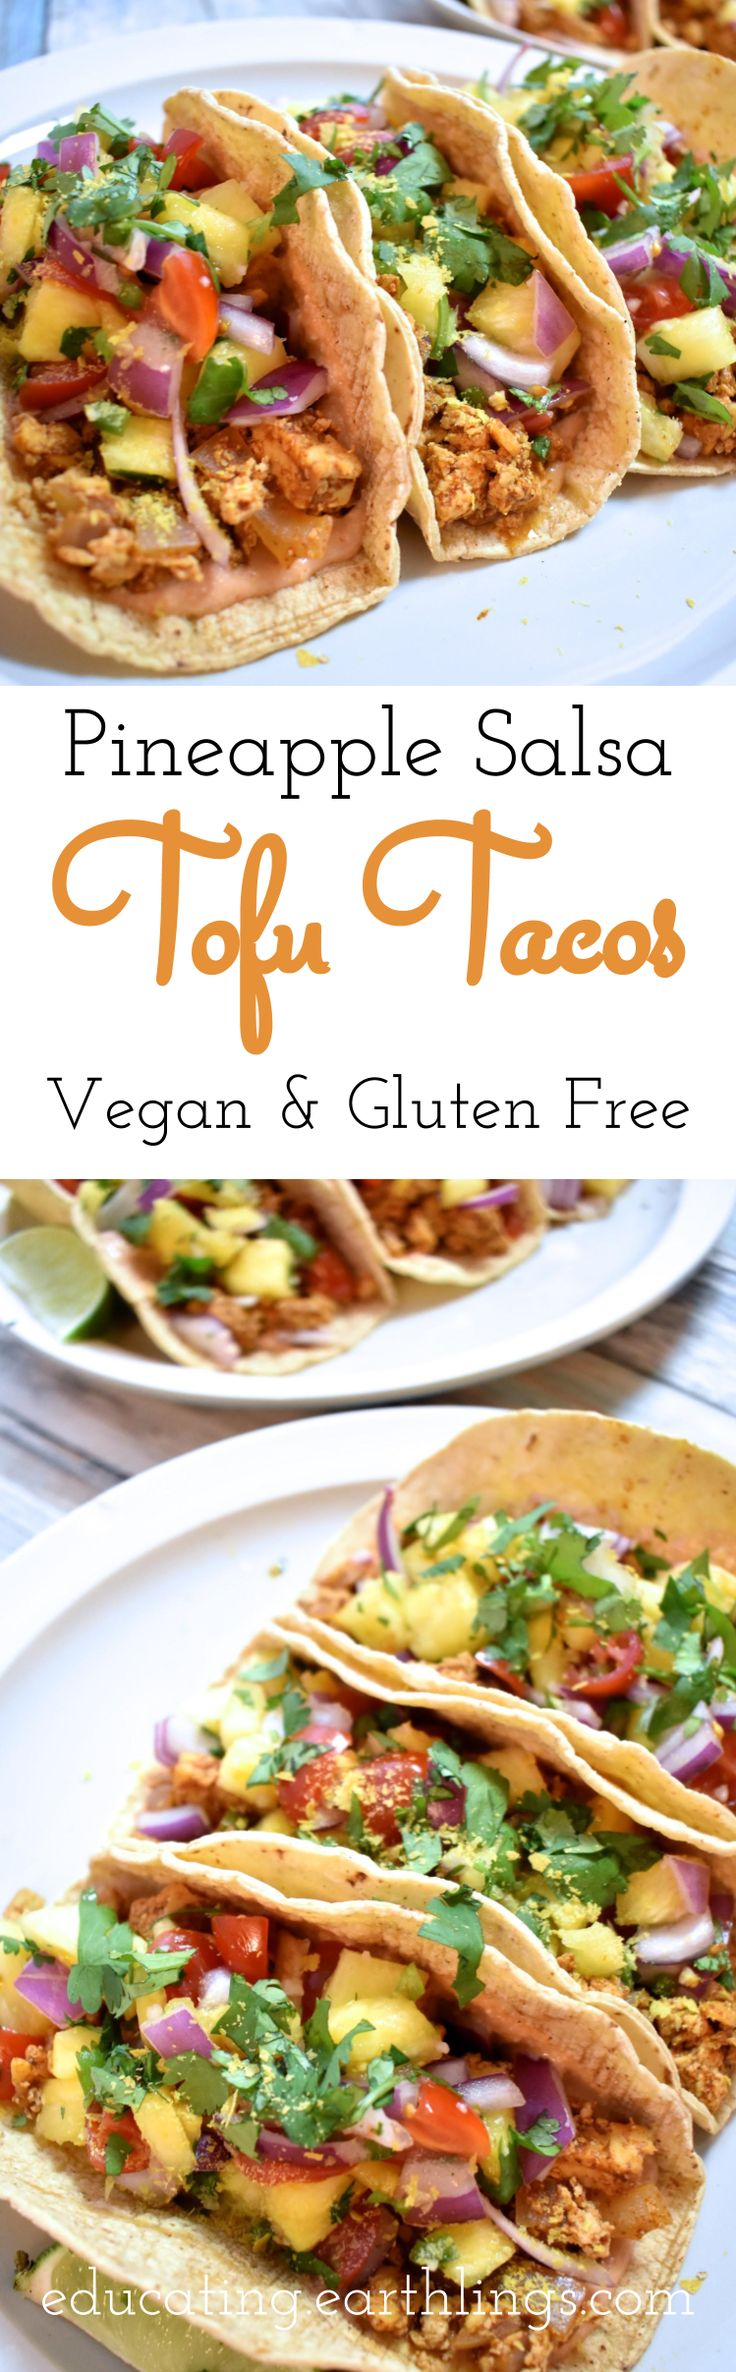 7 ingredient Pineapple Salsa & simple tofu taco recipe! This pineapple salsa is perfect to eat alone or with vegan tacos! vegan recipes, plant based tacos, pineapple tacos, raw salsa, simple salsa, summer salsa recipes, summer party recipes, summer recipes